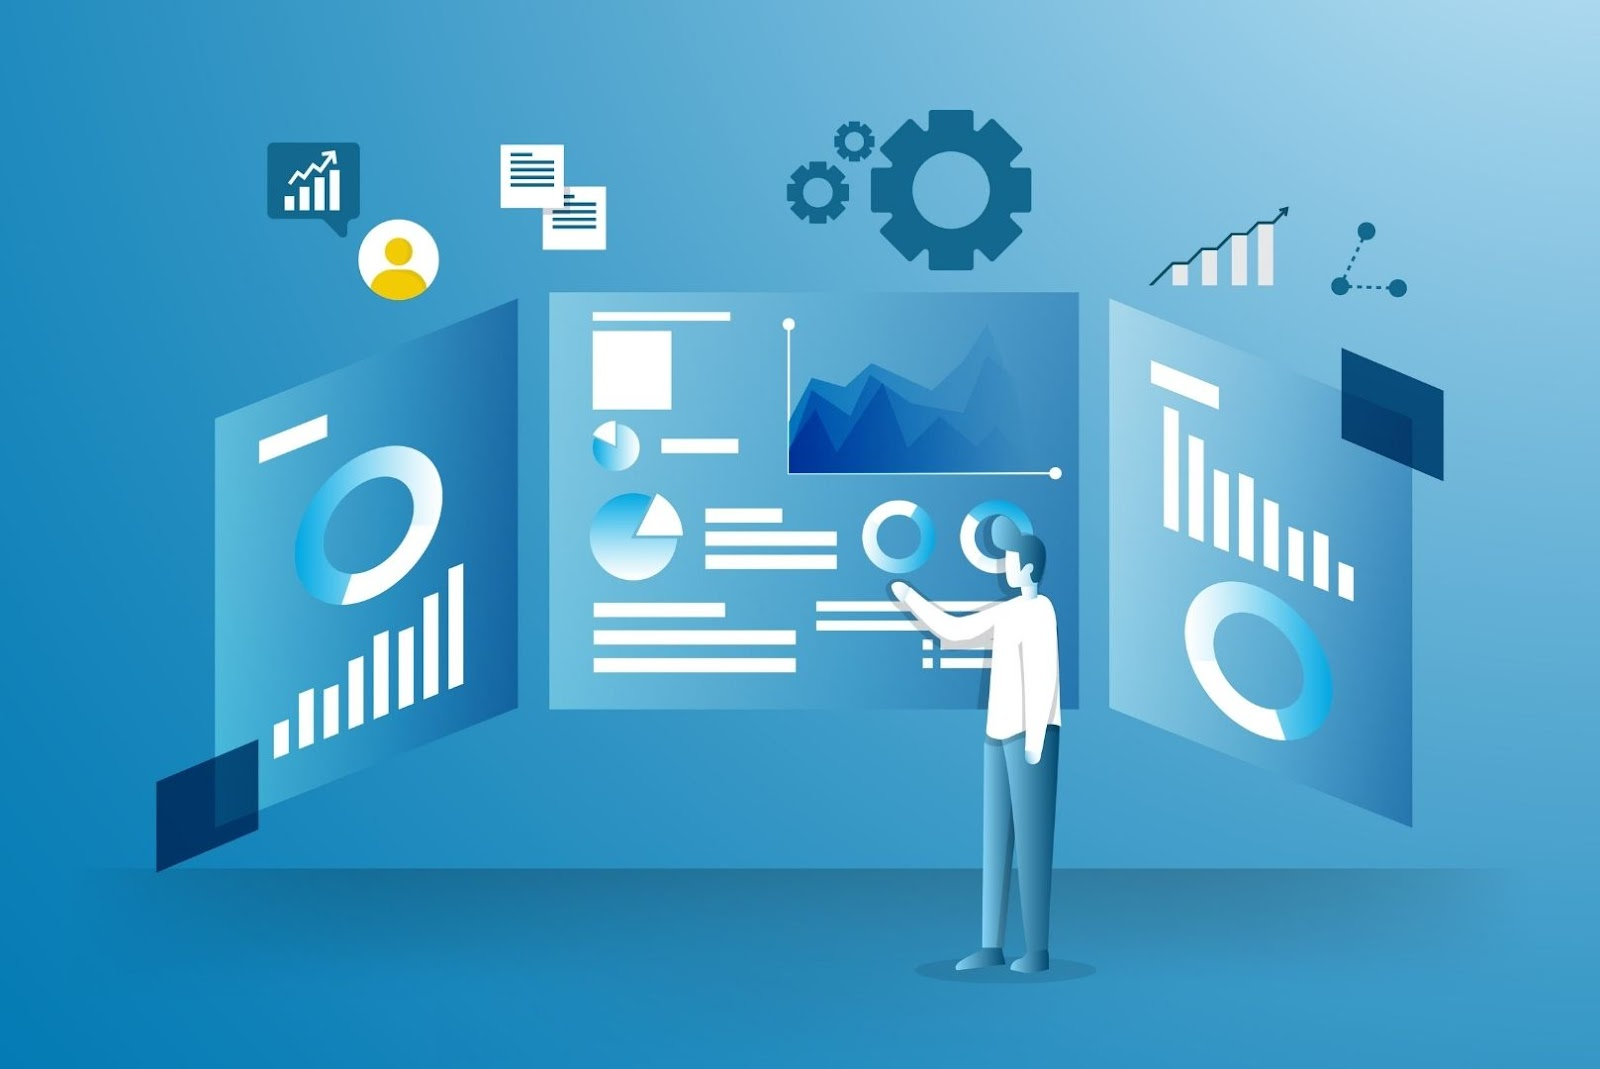 Different types of business intelligence dashboards